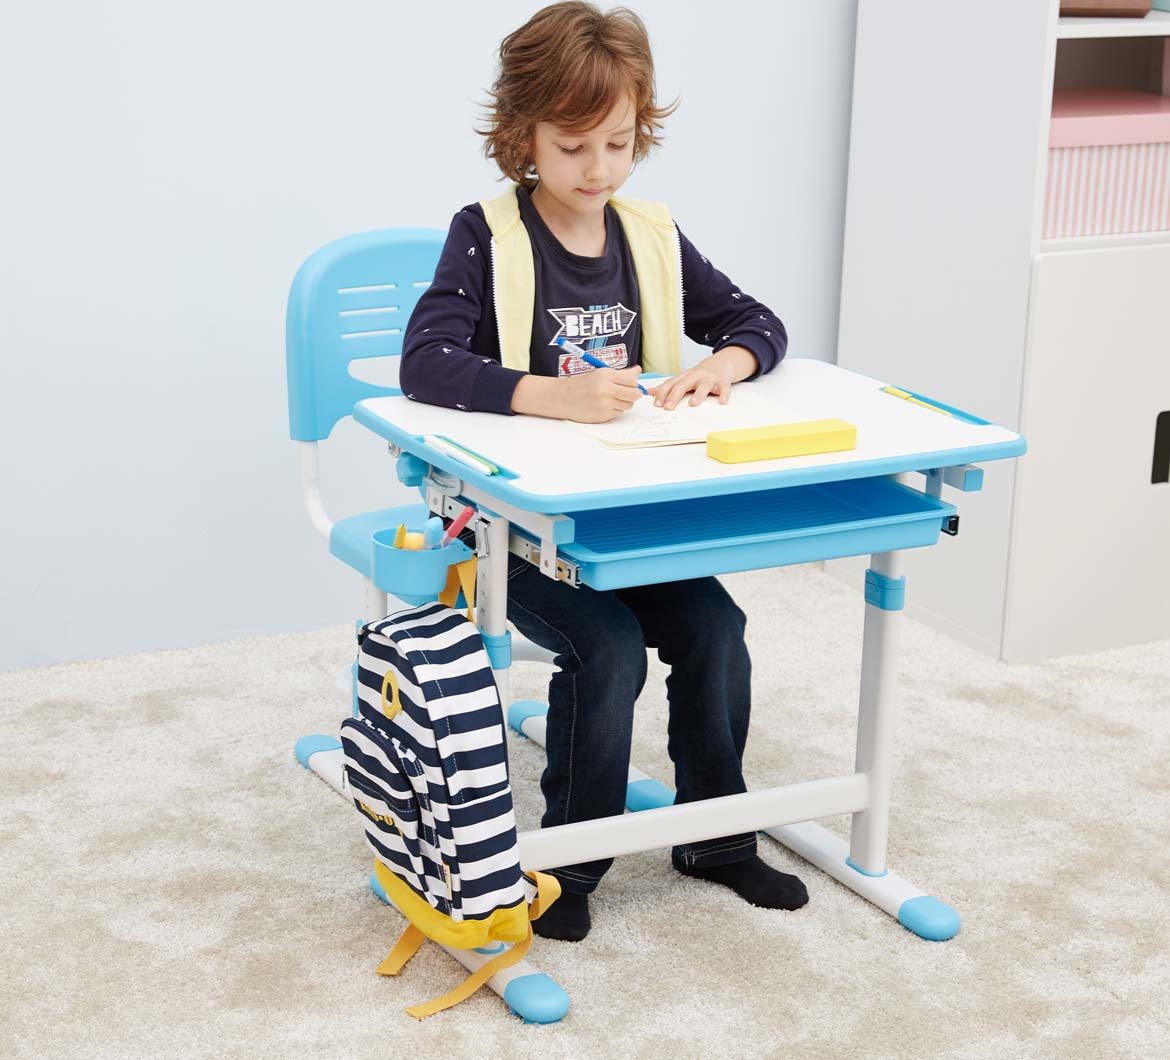 kids-table-chair-study-desk-with-tilt-desktop-blue-desk-for-boys-and-girls-portfolio-mini-blue-1